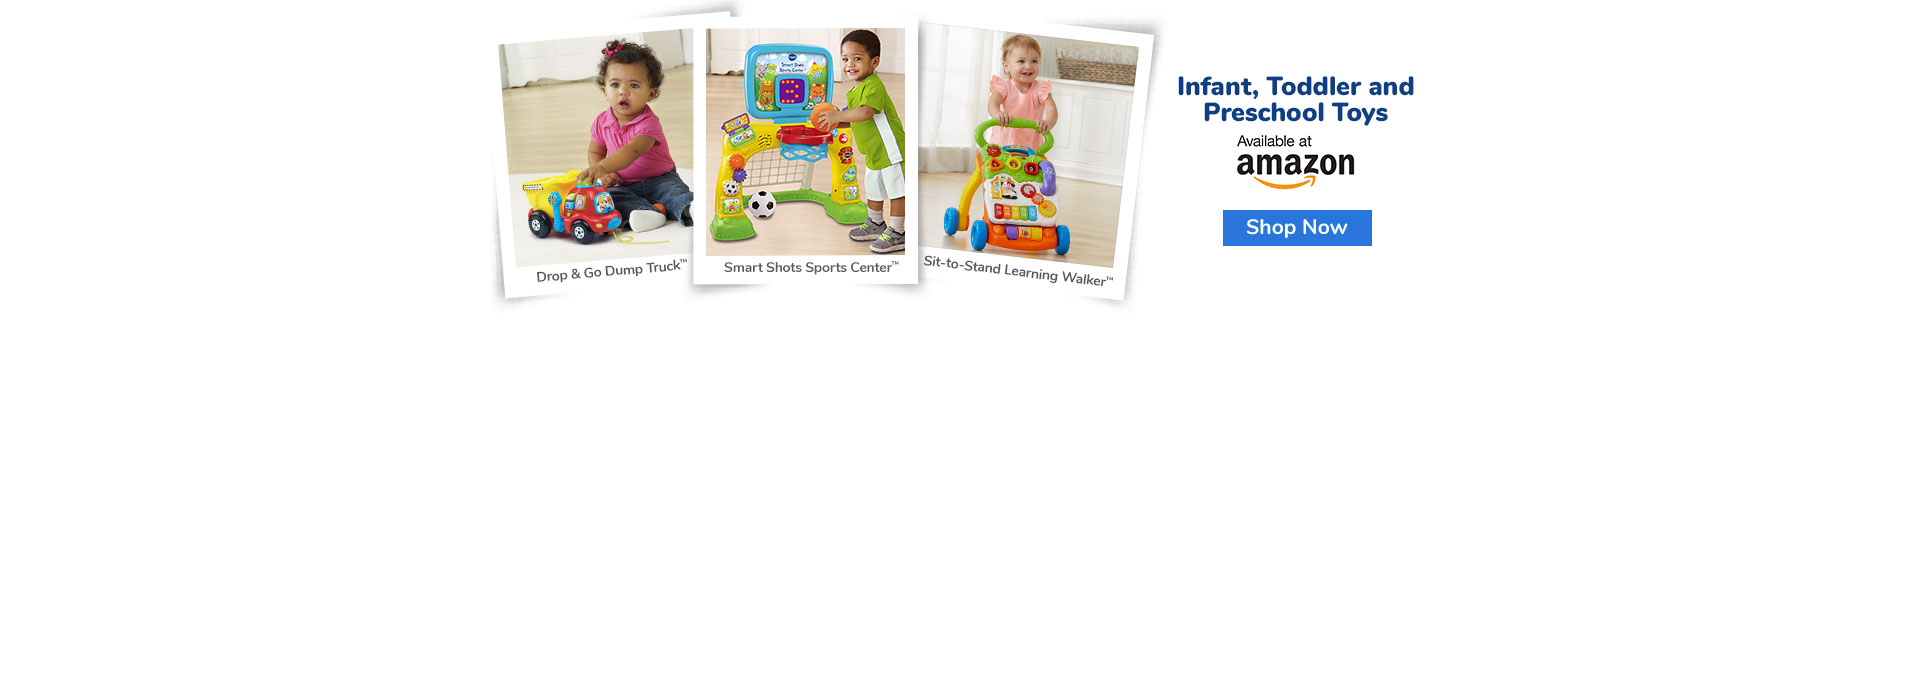 Infant, Toddler and Preschool Toys - available at Amazon